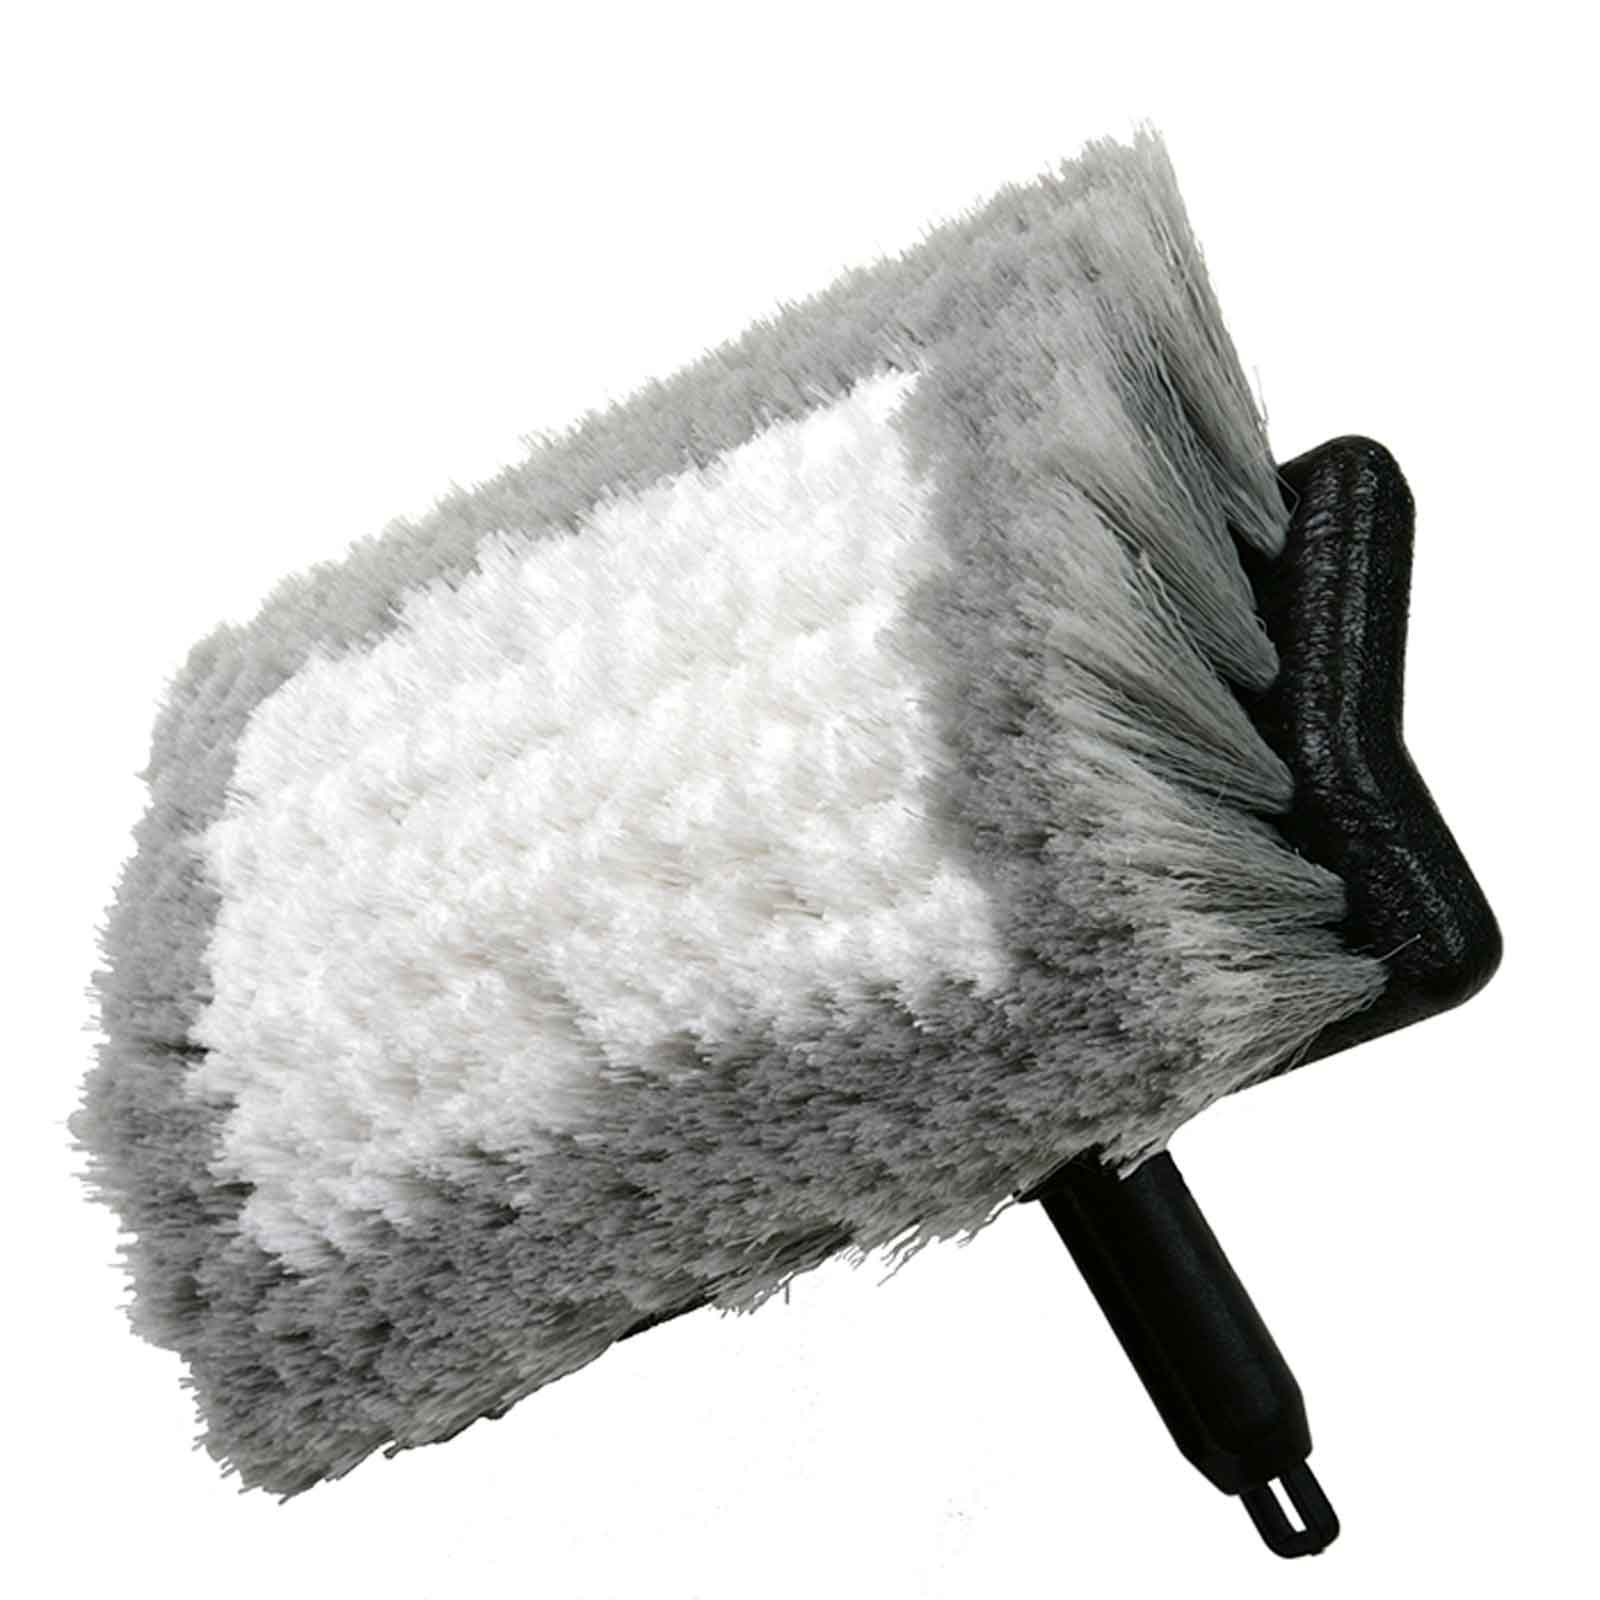 All Around Soft Bristle Cleaning Brush Harrod Horticultural